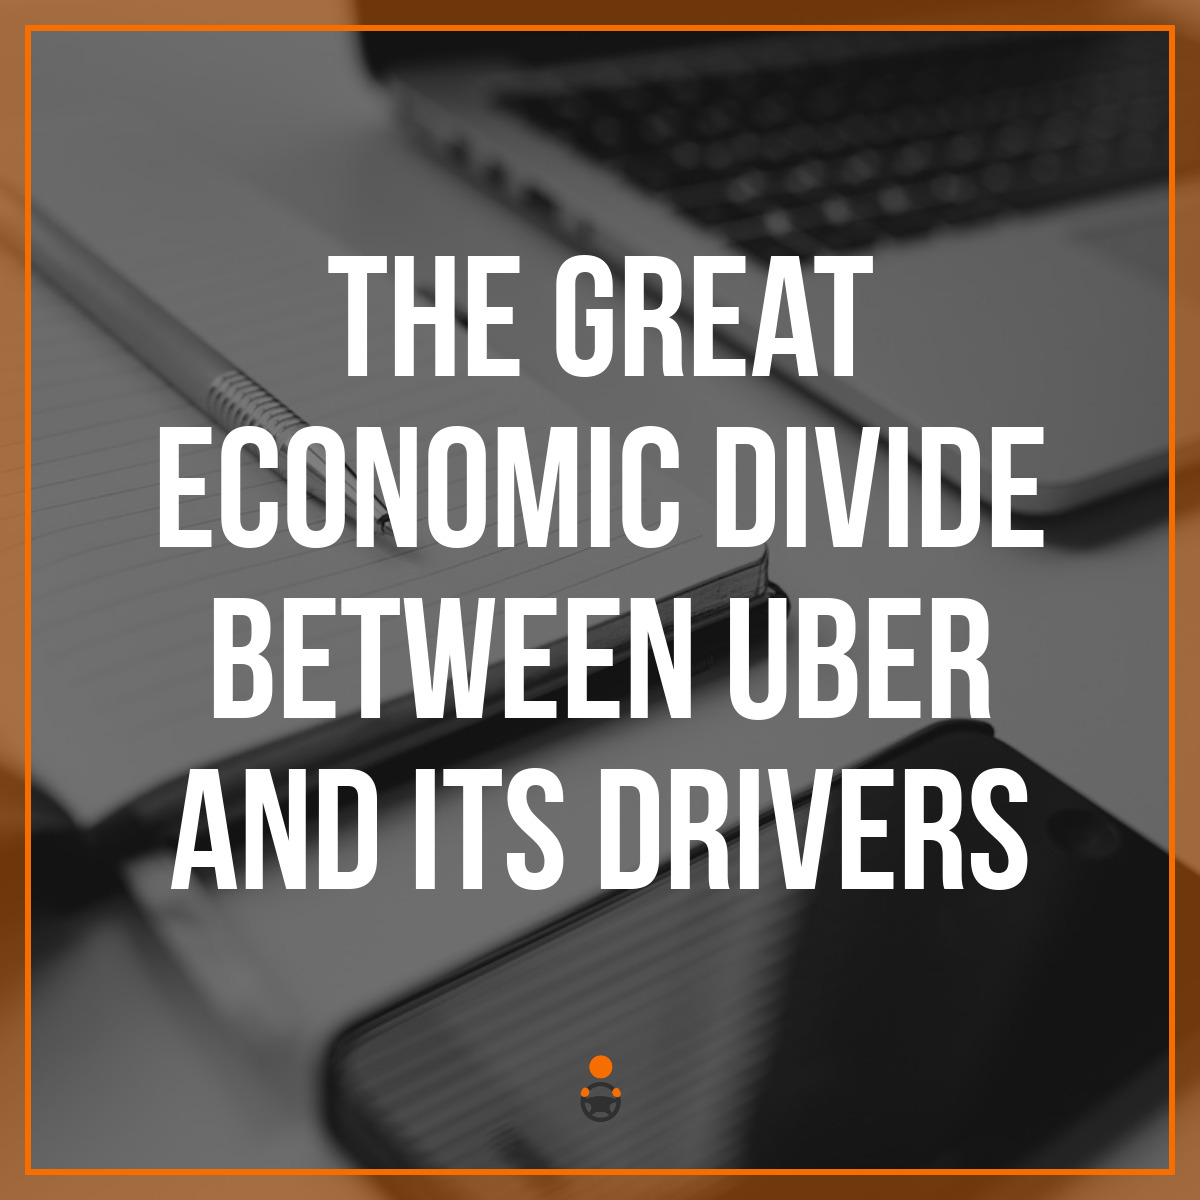 The Great Economic Divide Between Uber and Its Drivers